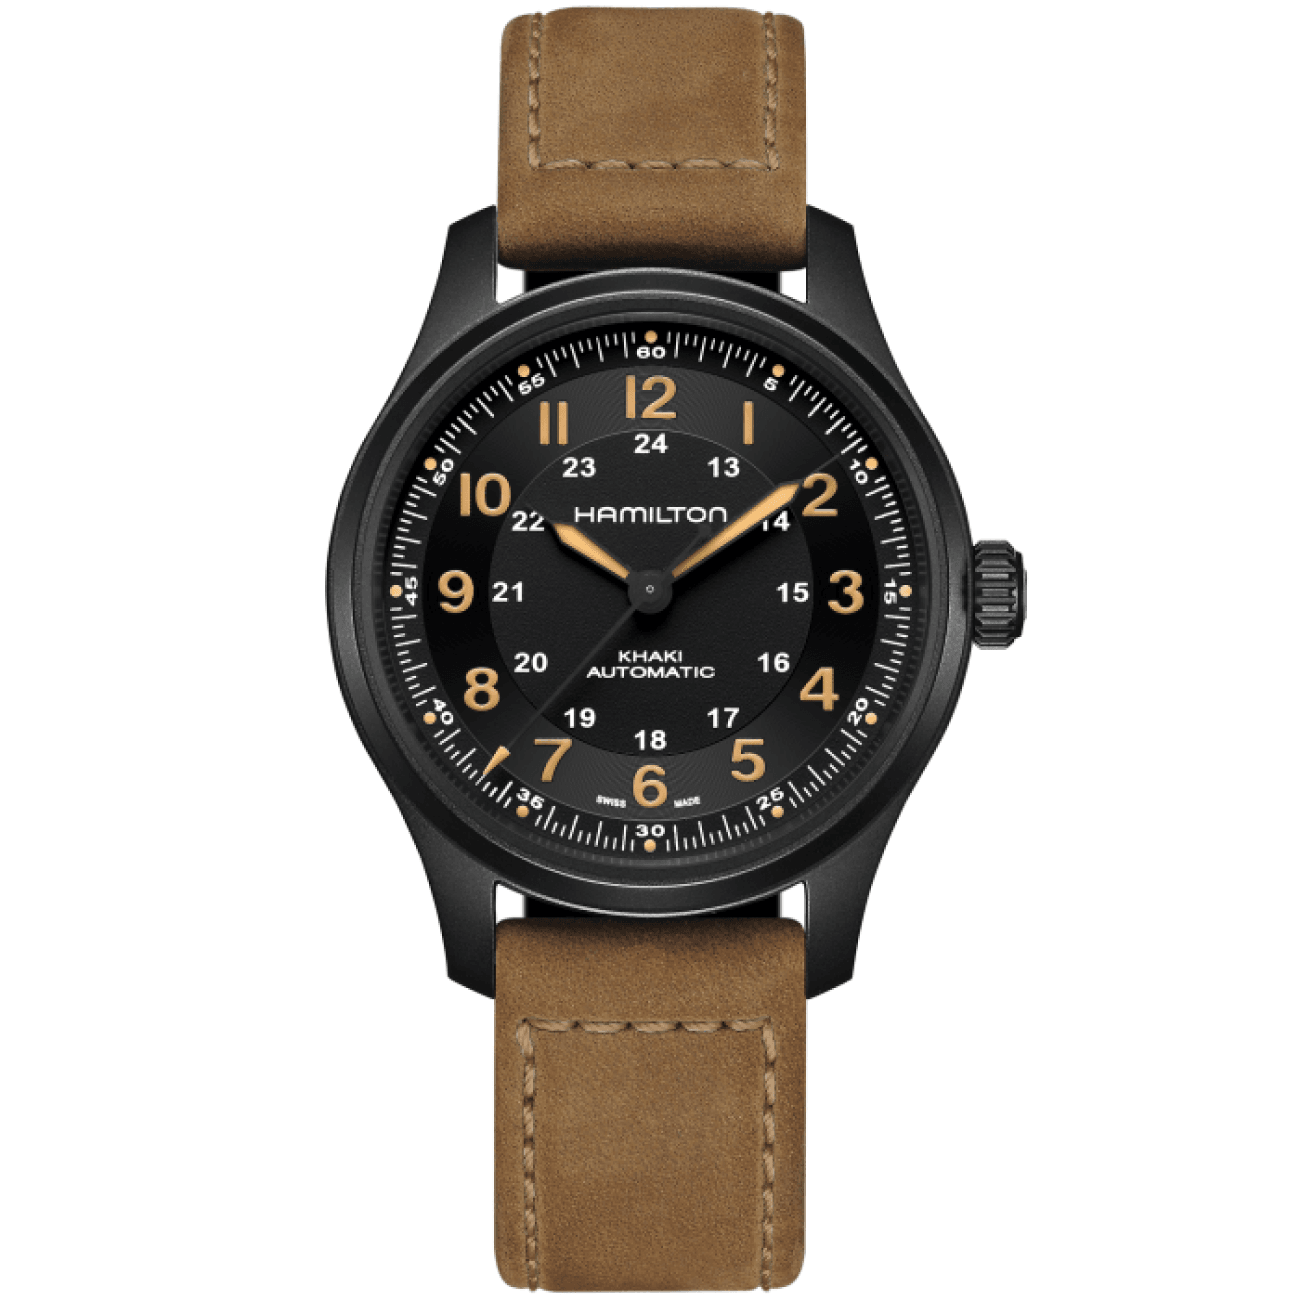 Hamilton Watches - Khaki Field Titanium Auto | Manfredi Jewels